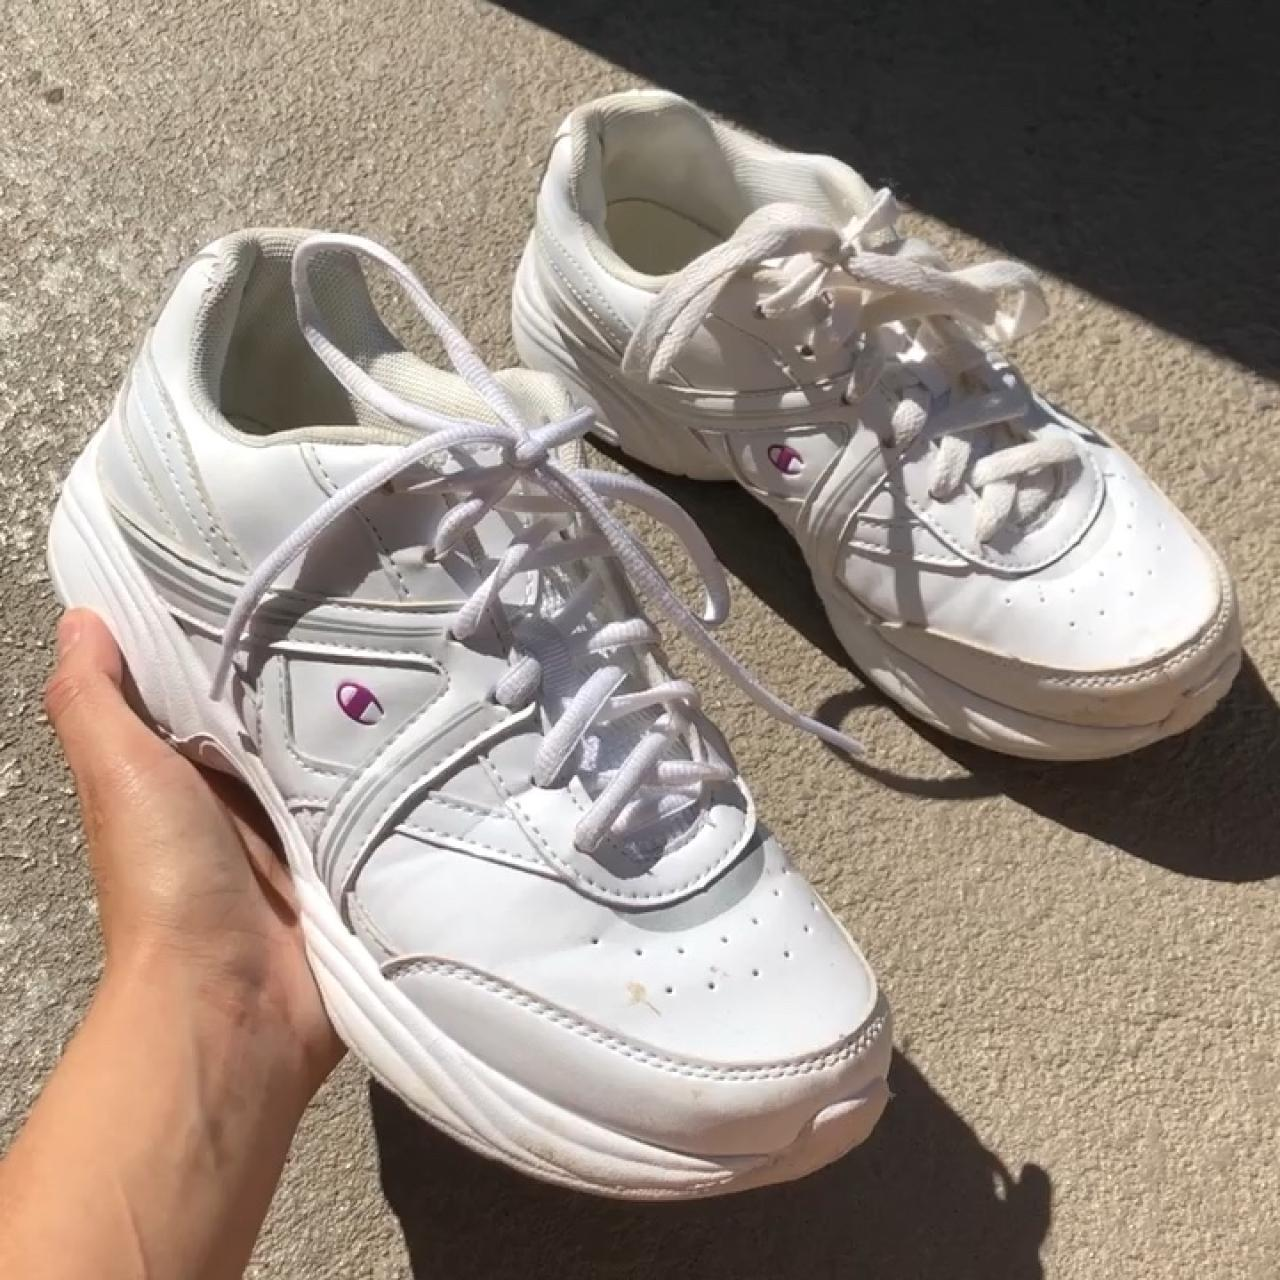 7f6a3b50426 Chunky all white sneakers by Champion. Women s 8 1 2